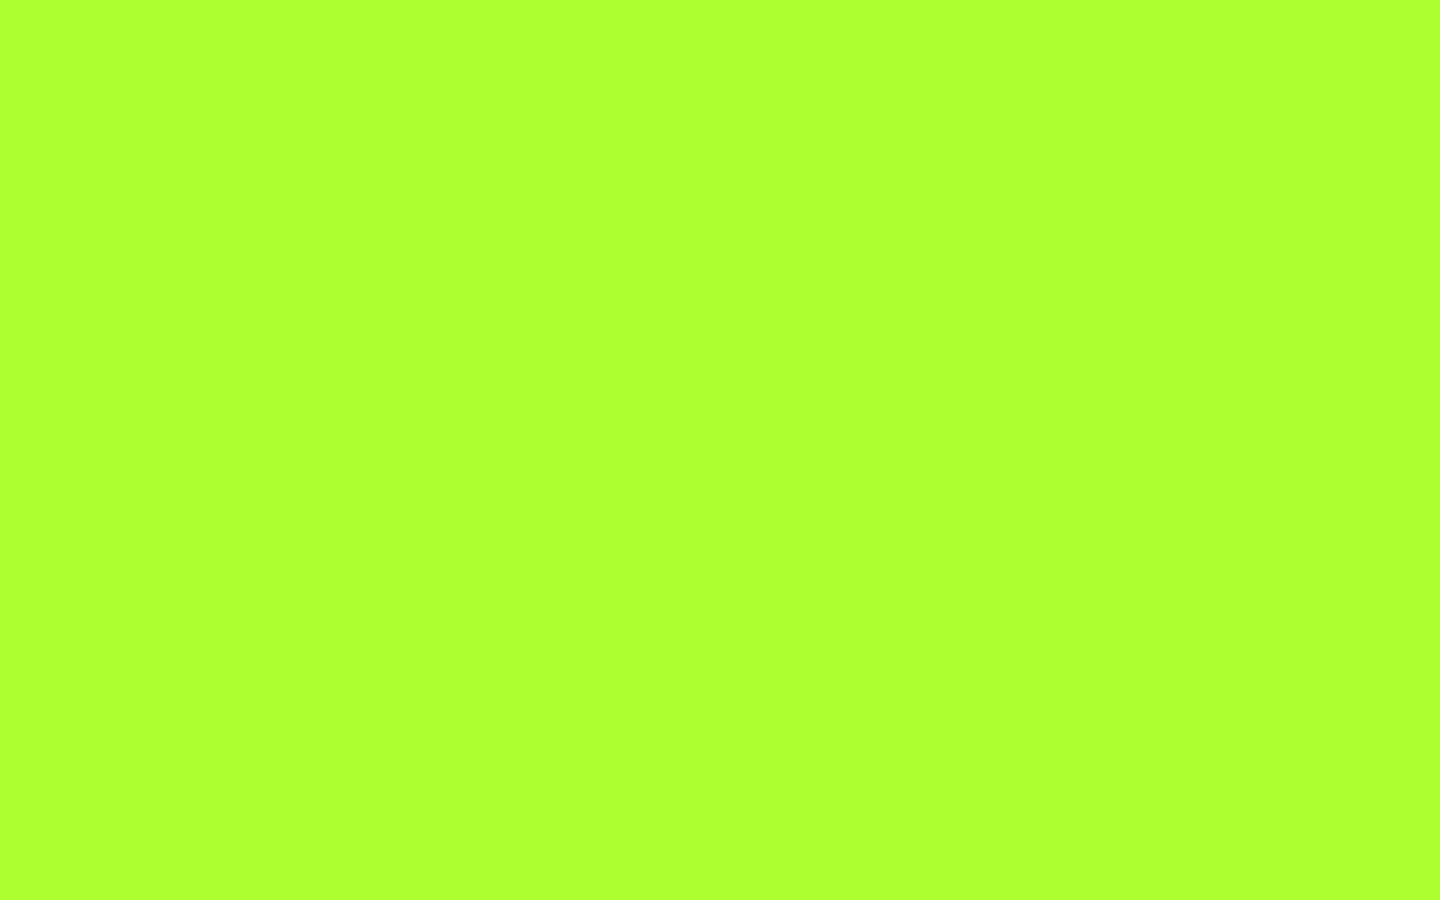 1440x900 Green-yellow Solid Color Background